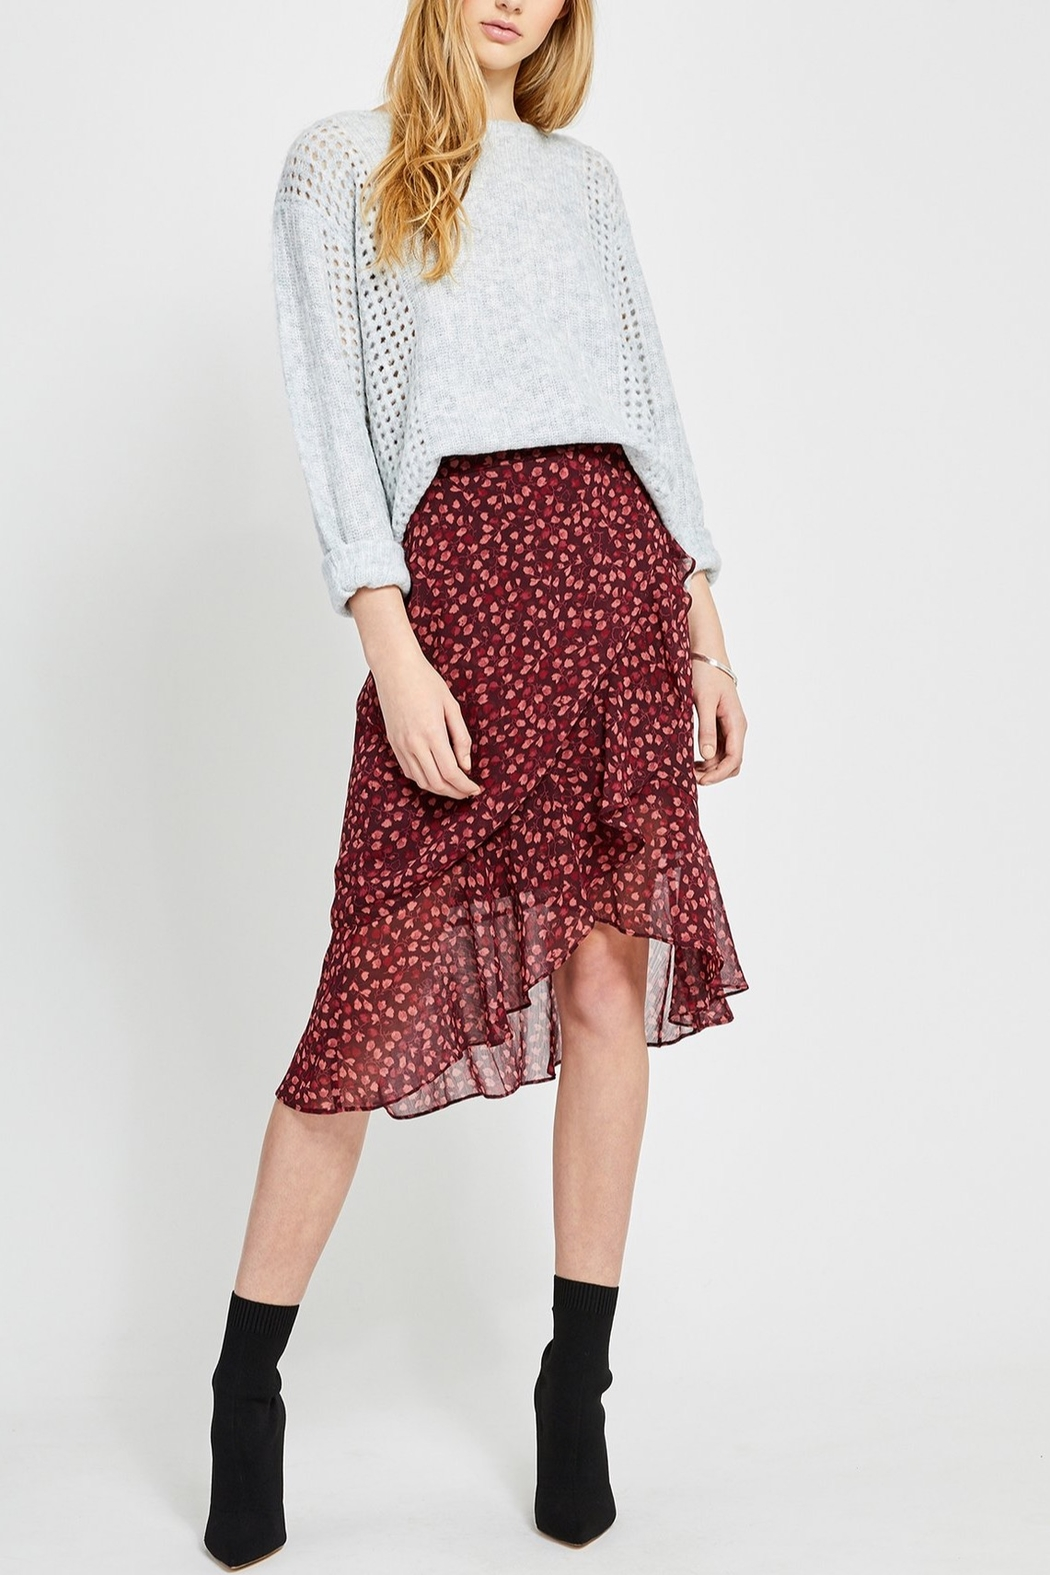 Gentle Fawn Xena Ruffle Skirt - Front Cropped Image